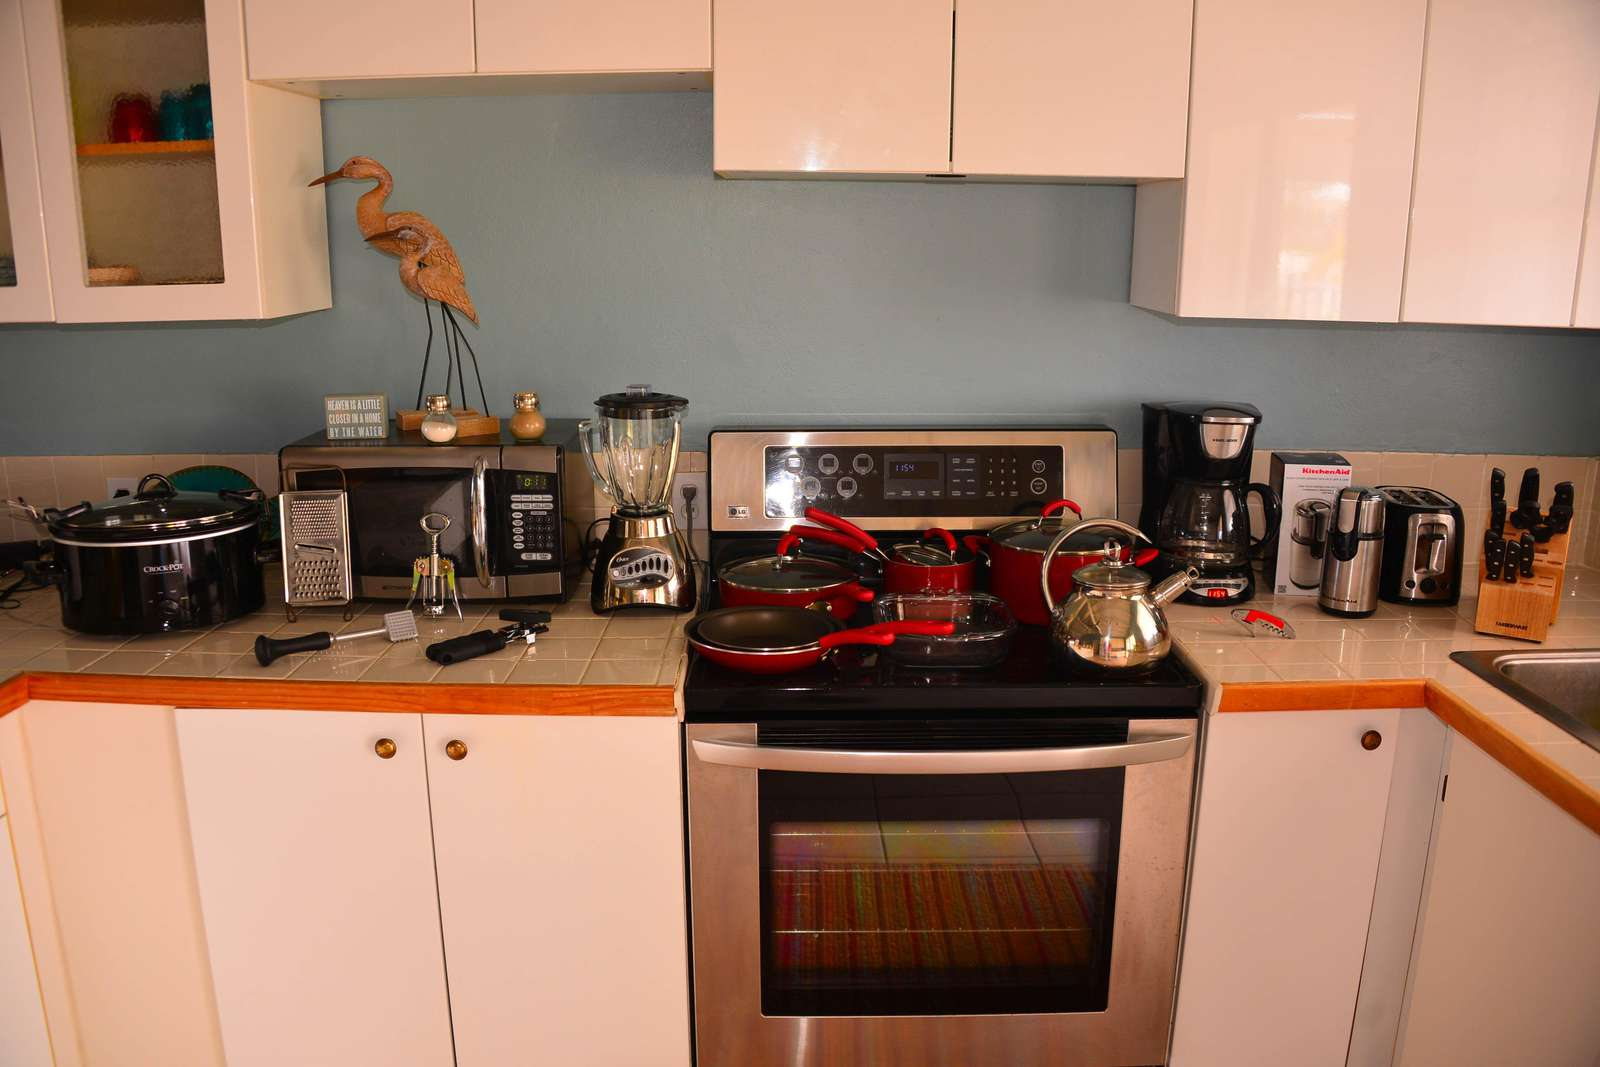 Fully stocked kitchen items (old countertops)